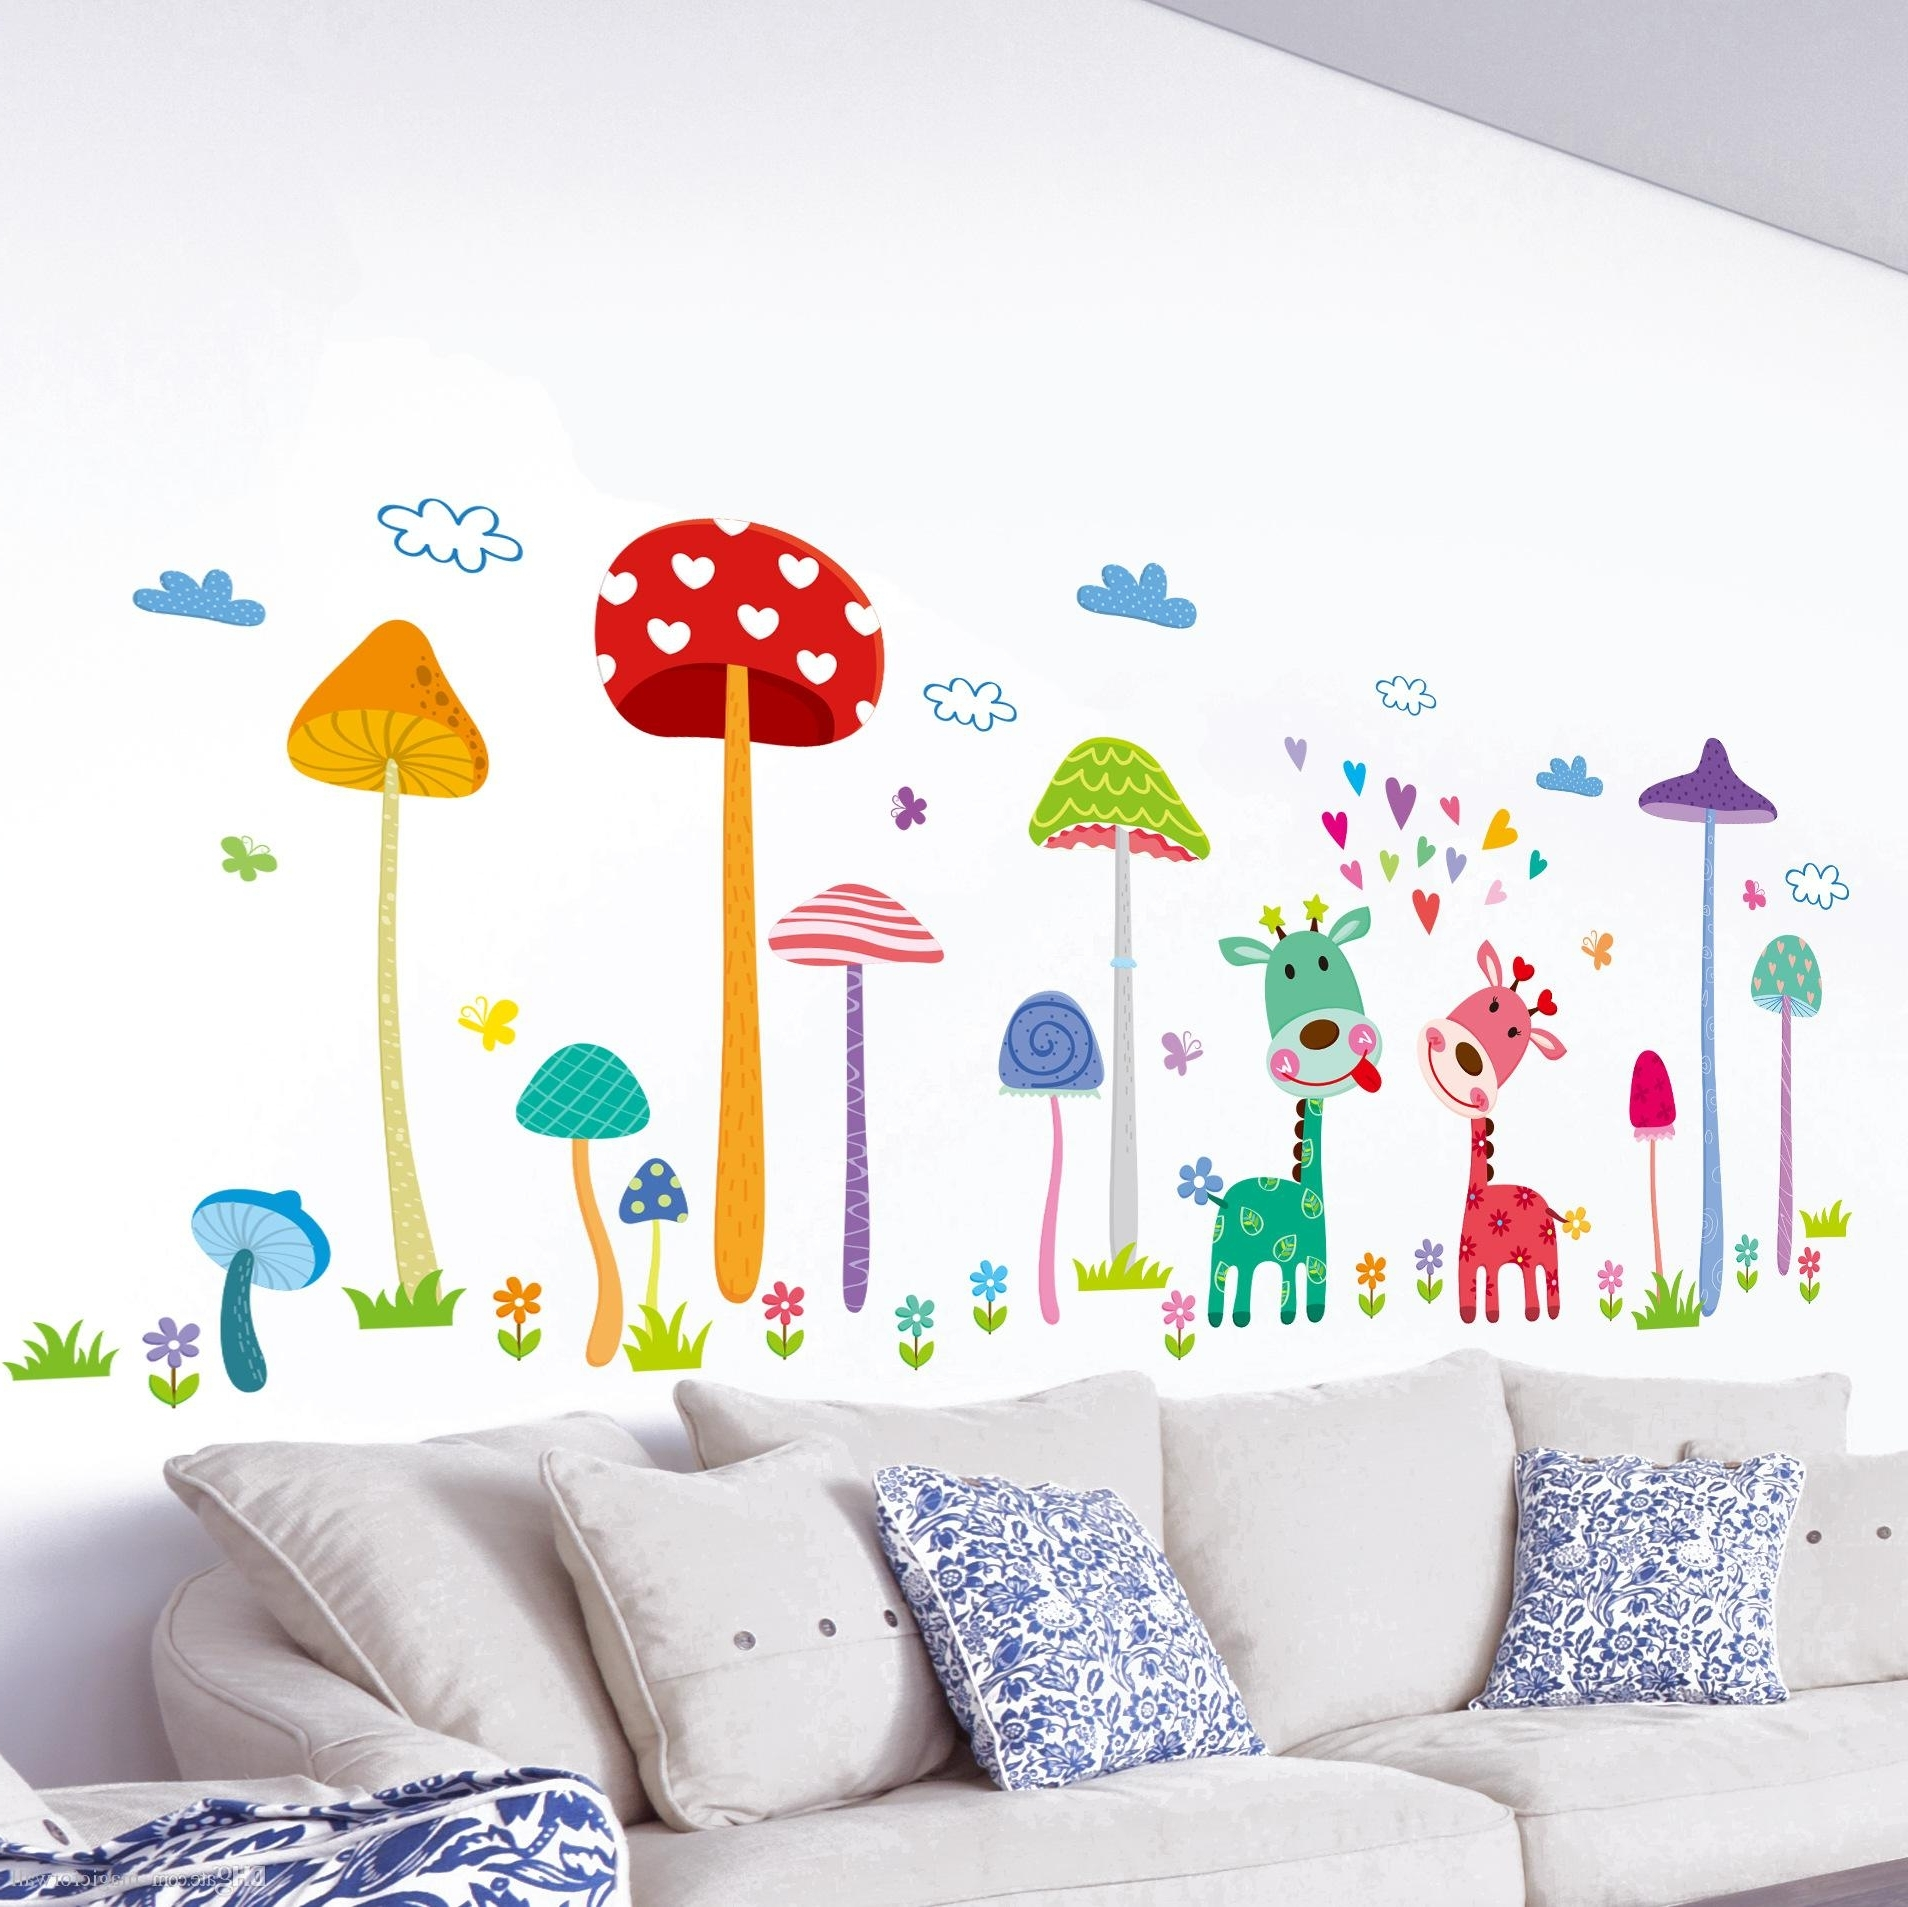 Best And Newest Wall Art Decors For Forest Mushroom Deer Animals Home Wall Art Mural Decor Kids Babies (Gallery 15 of 15)